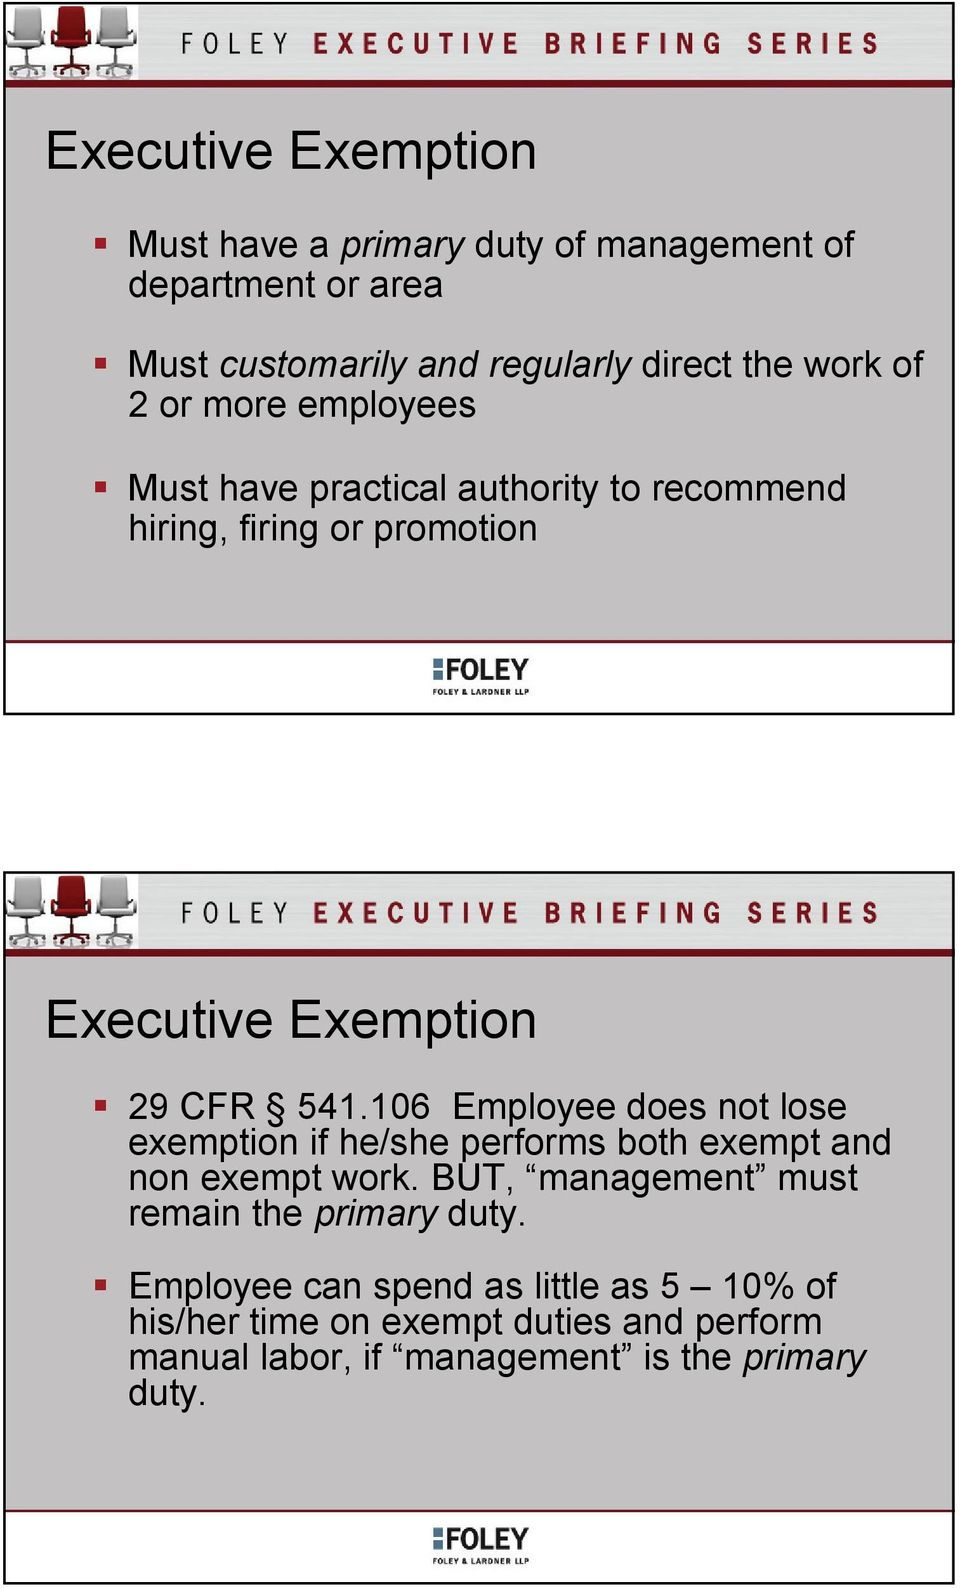 106 Employee does not lose exemption if he/she performs both exempt and non exempt work.